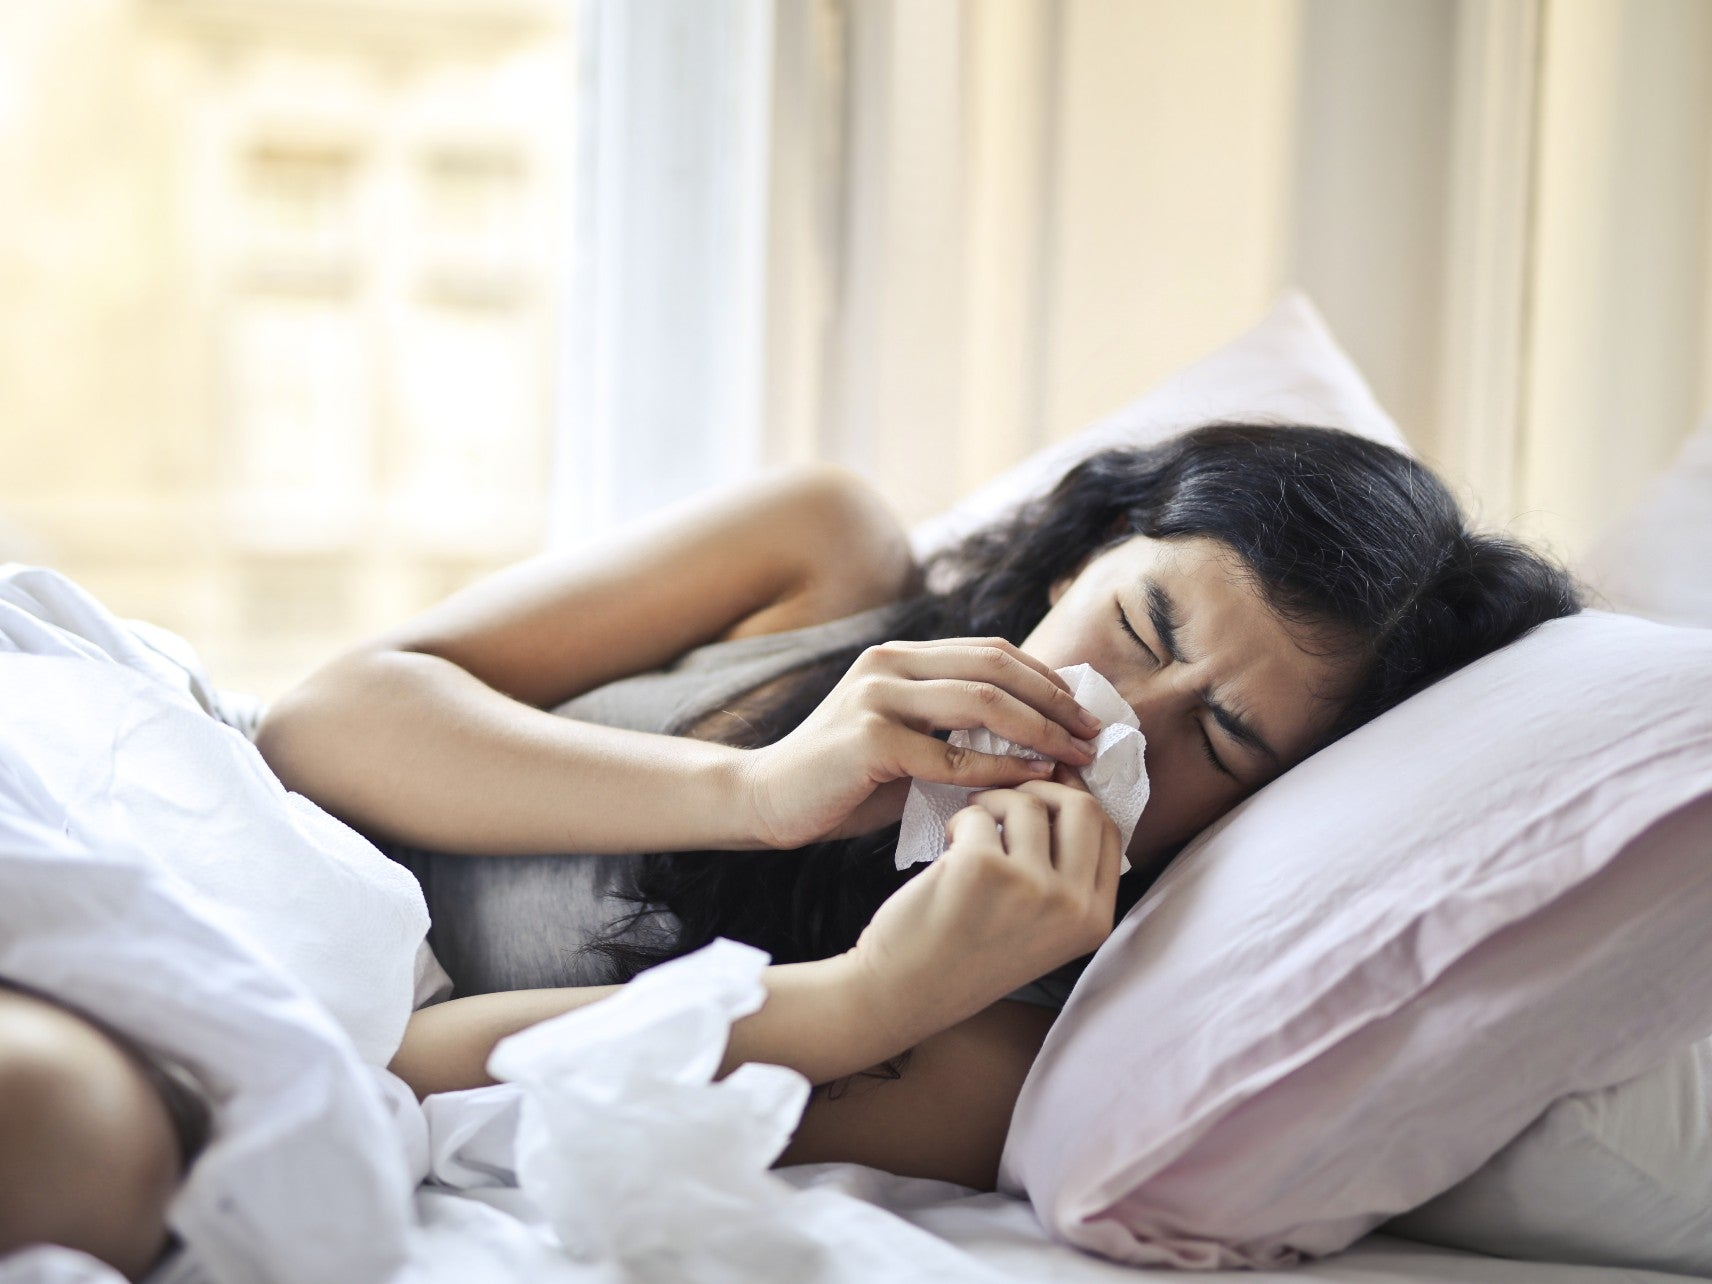 The flu disappeared this year. What will happen next winter?